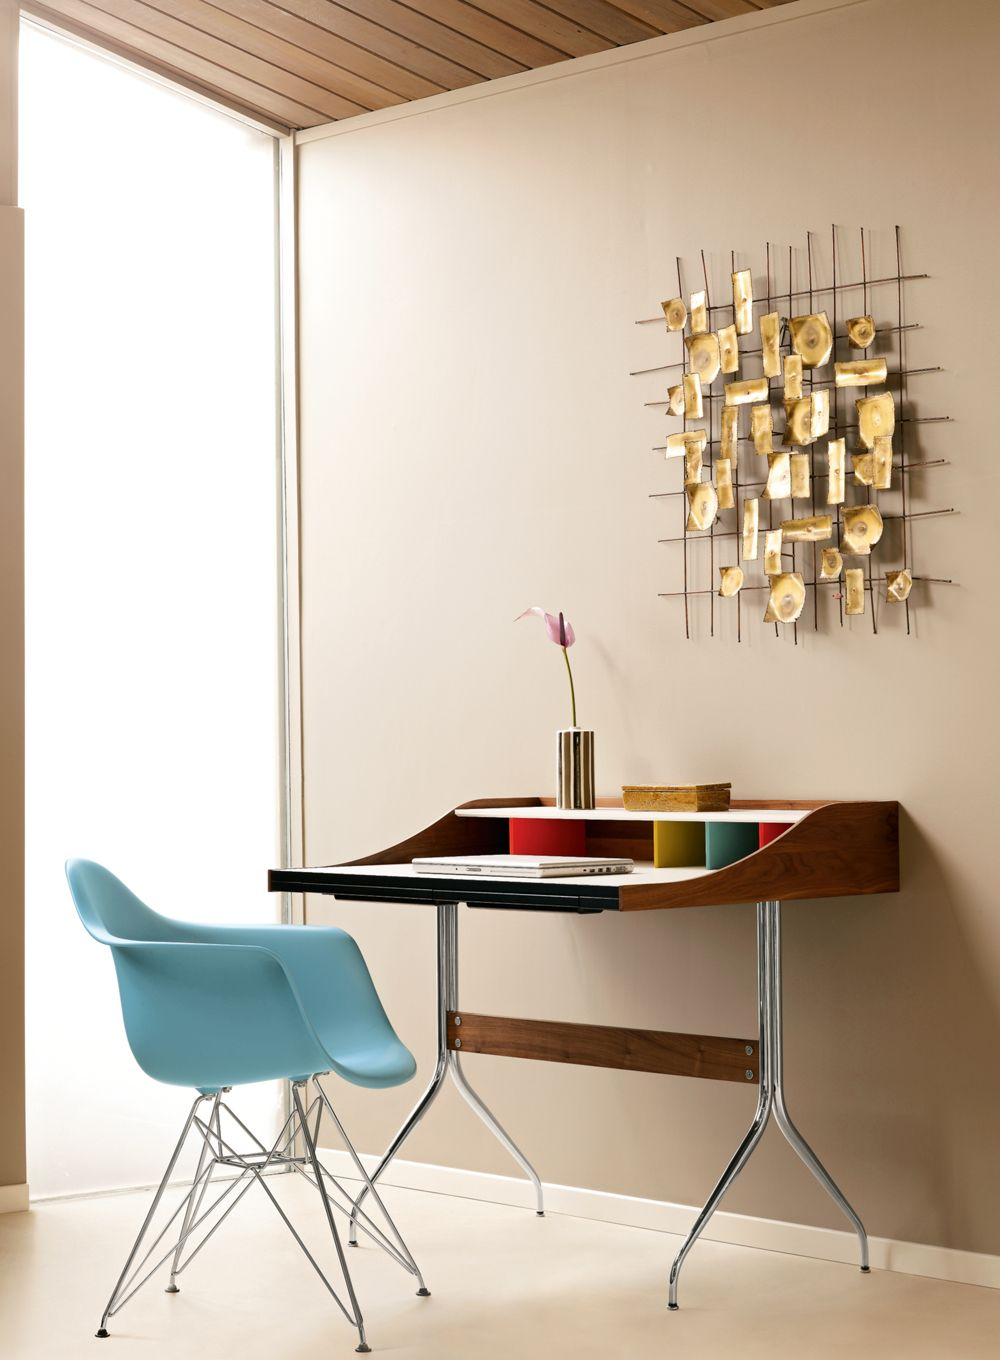 Nelson Swag Leg Desk Designed By George Nelson Chair By Eames Furniture Design Home Swag Leg Desk